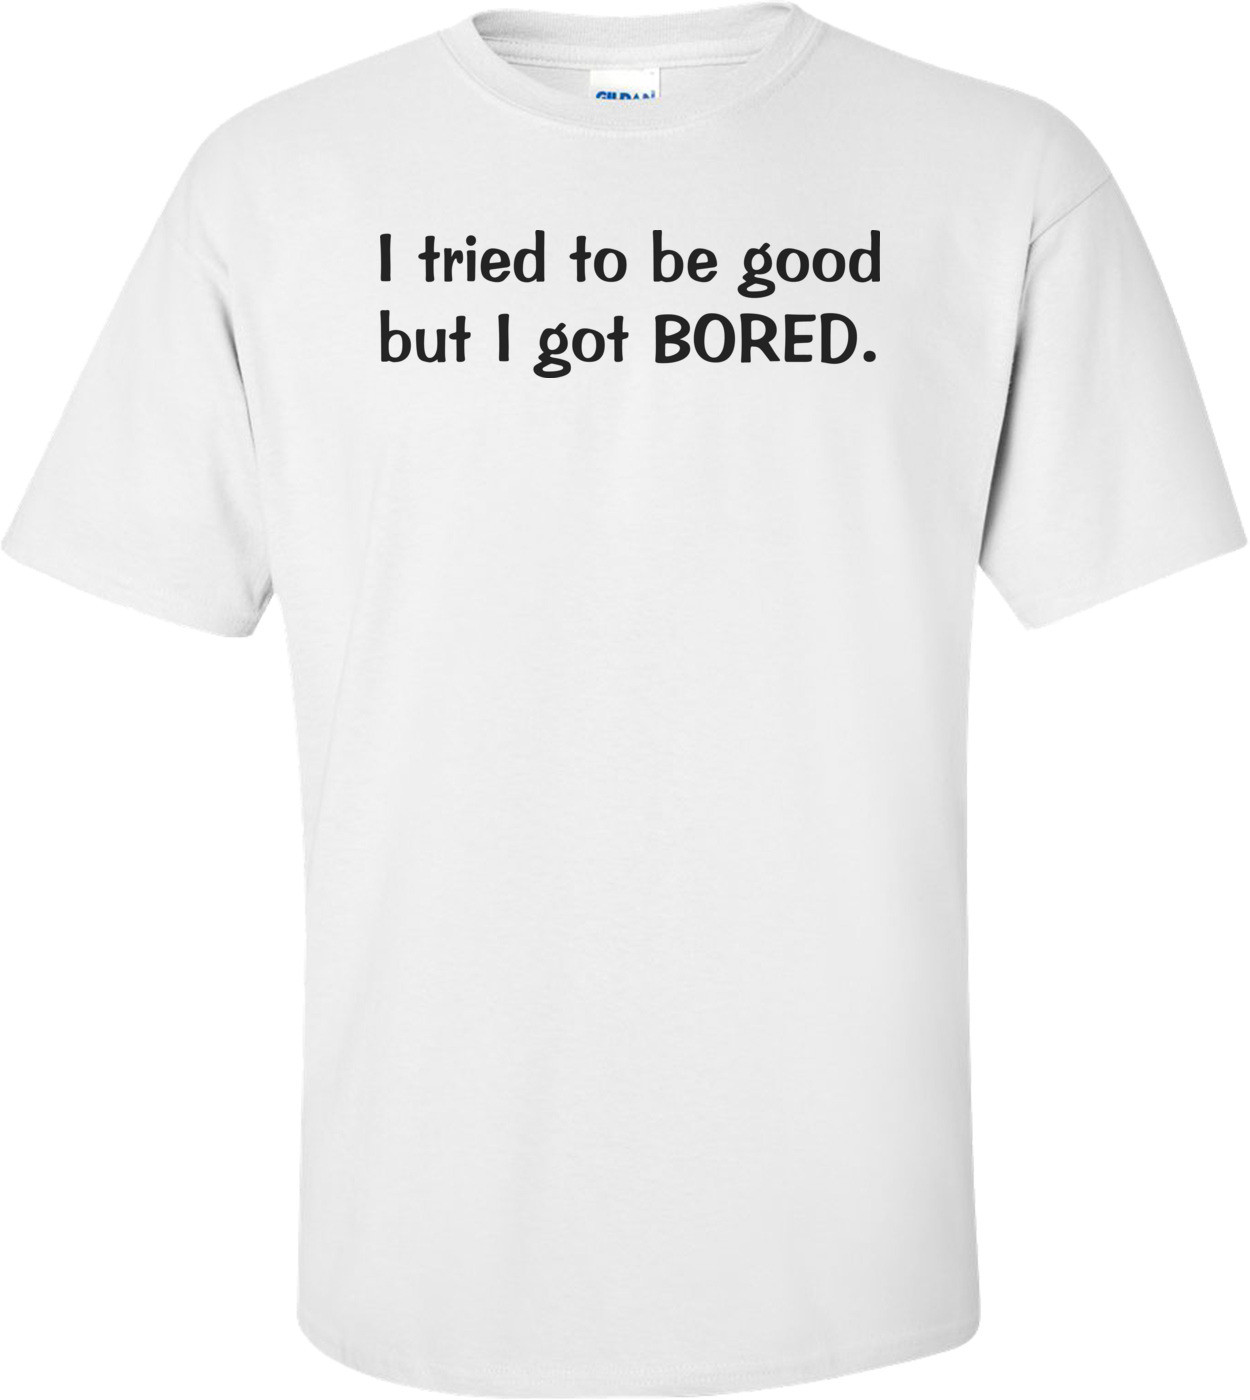 I Tried To Be Good, But I Got Bored Funny Shirt